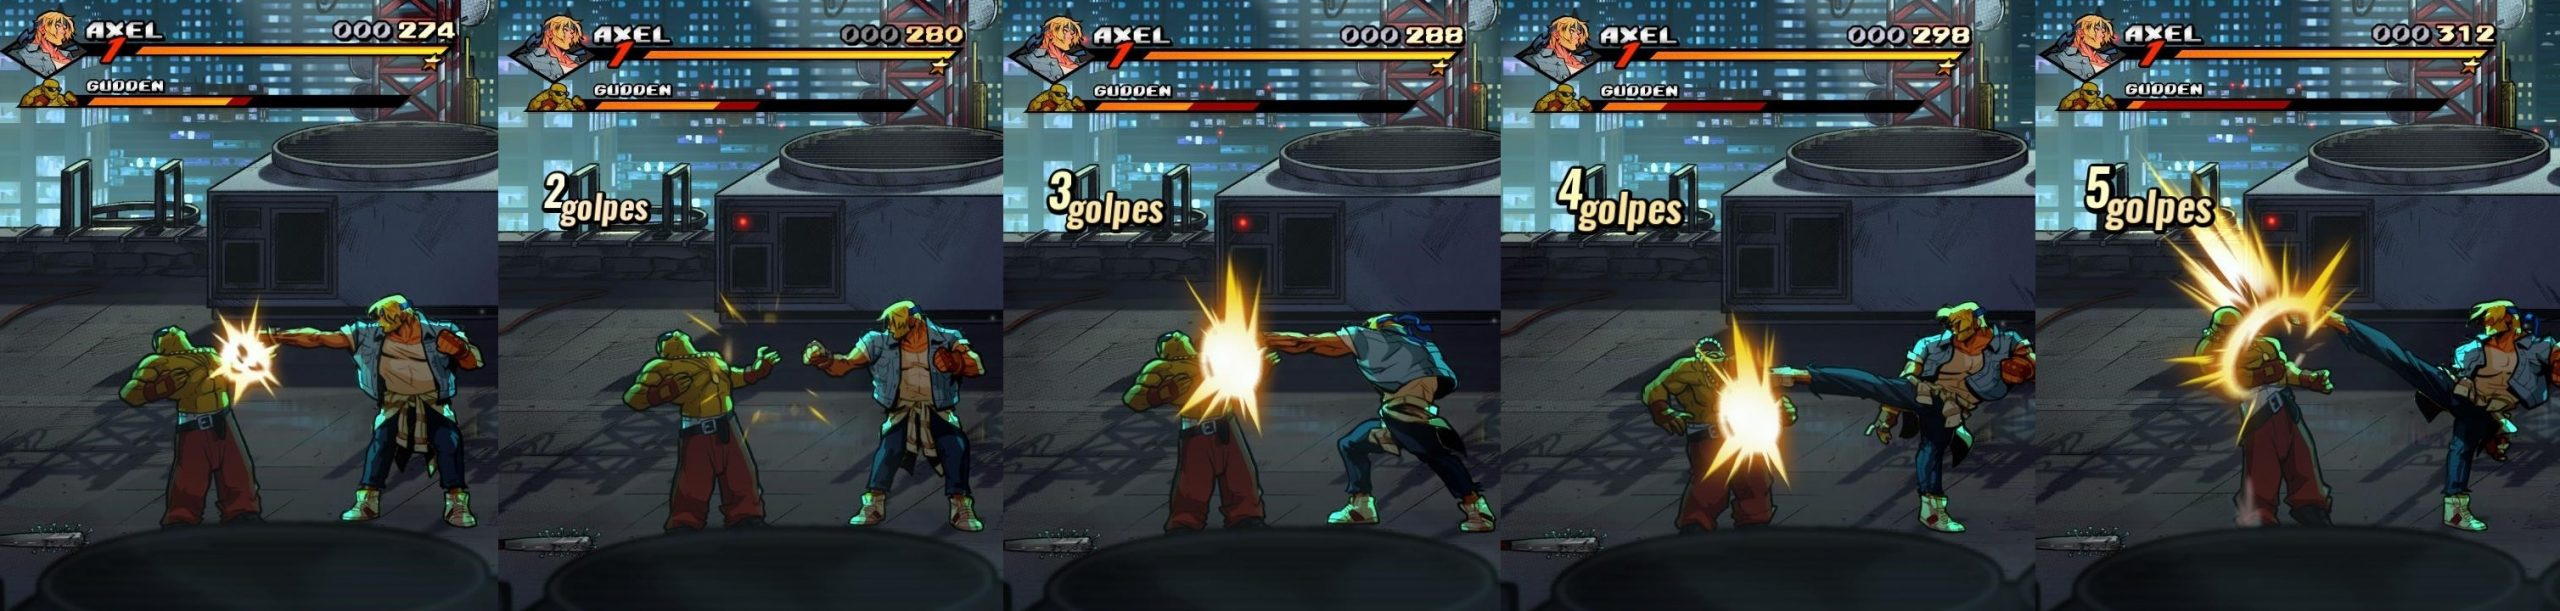 Streets-of-rage-4-gameplay